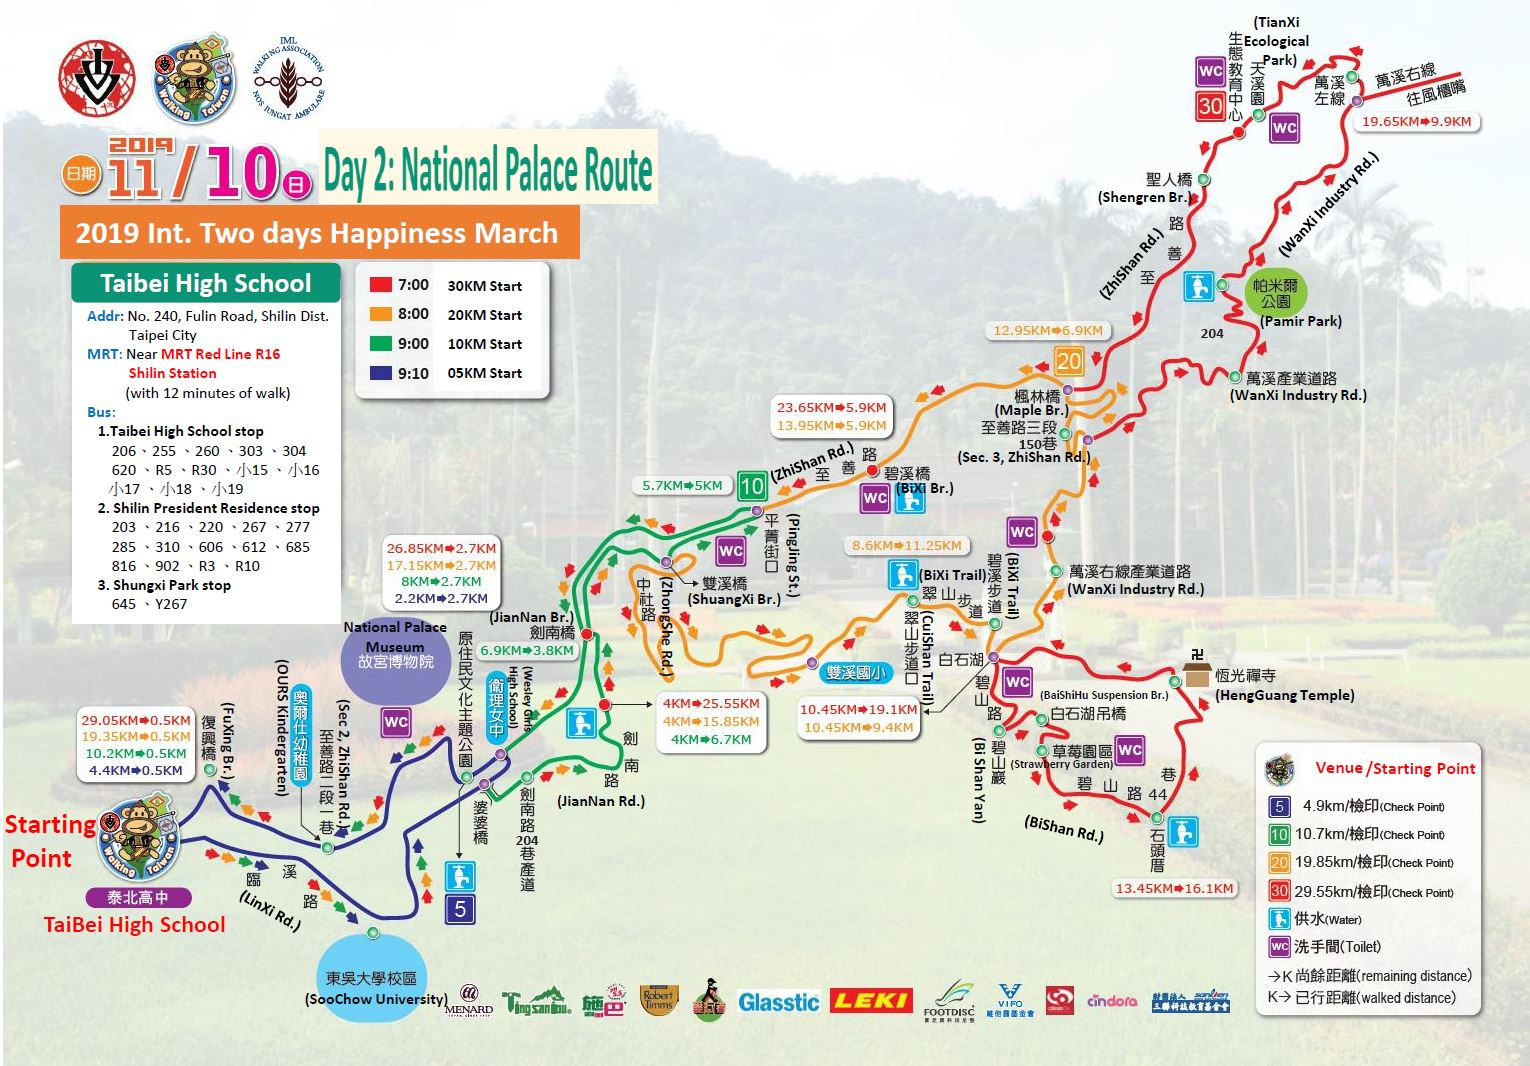 2019 IML Taiwan Day 2 Route